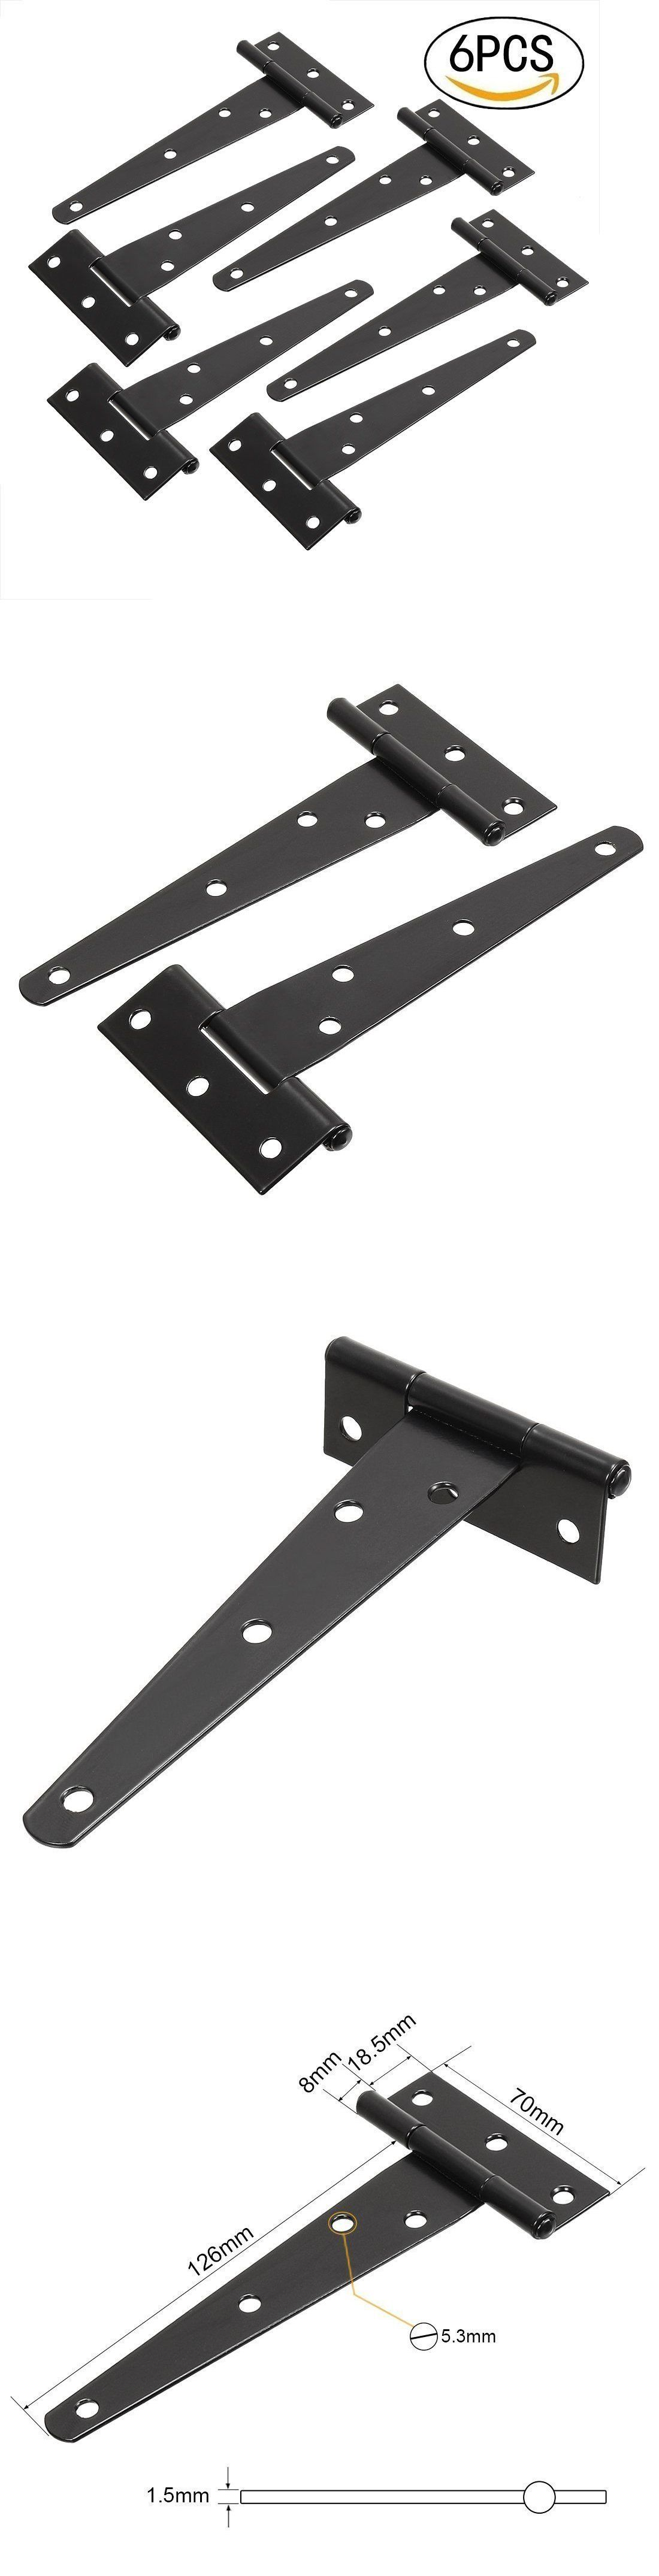 Door Hinges 66739: Tandb T-Strap Heavy Duty Shed Hinge Gate